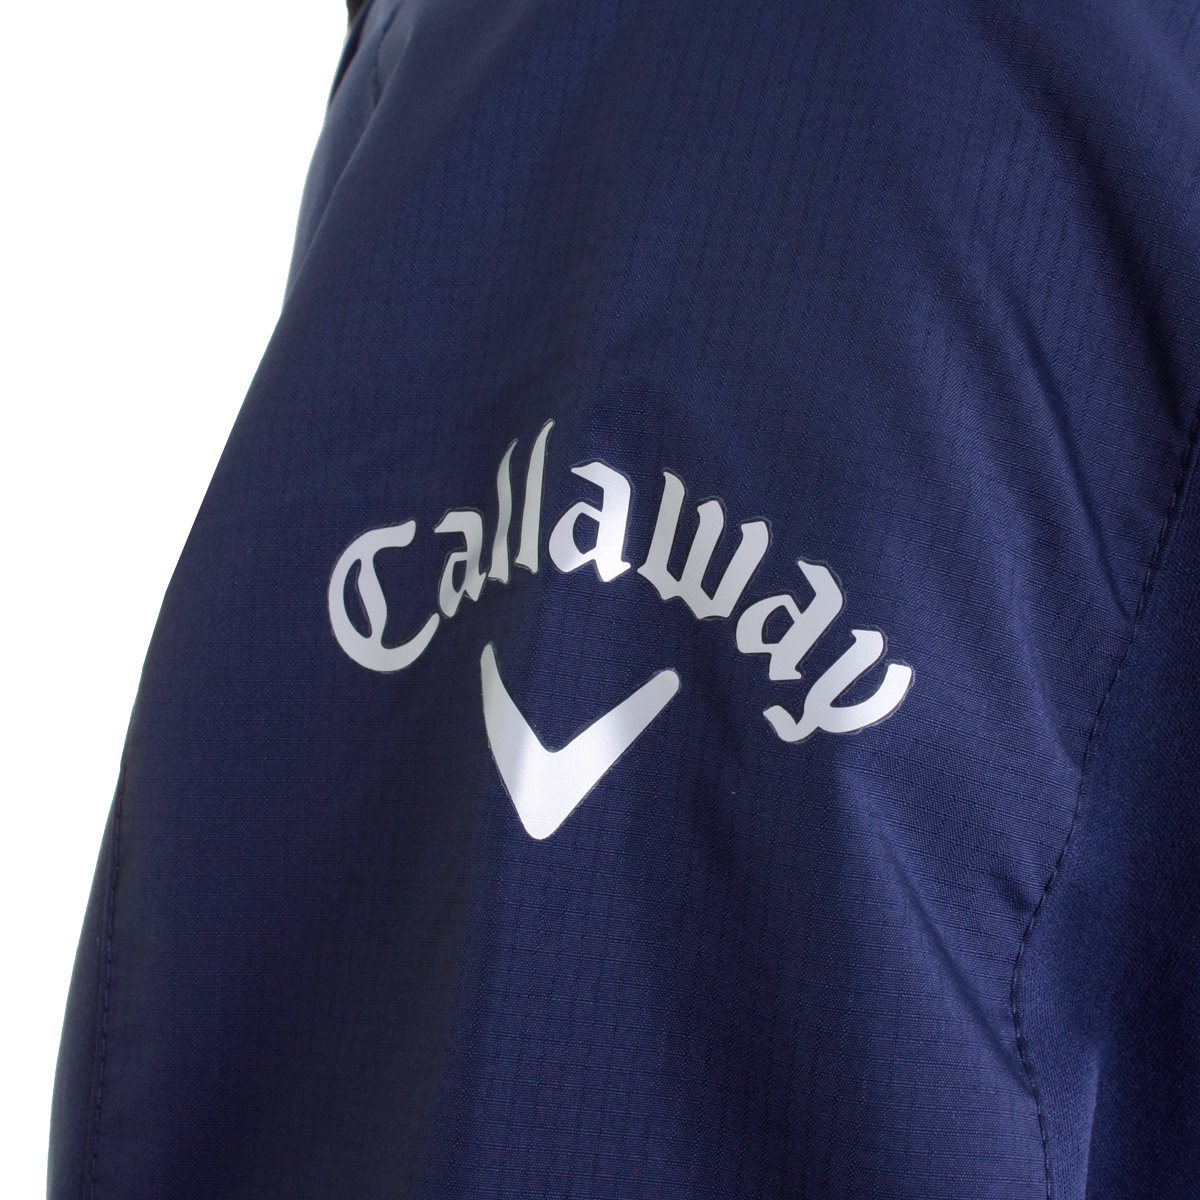 Callaway-Golf-Mens-Softshell-Thermal-Stretch-Wind-Resistant-Jacket-67-OFF-RRP